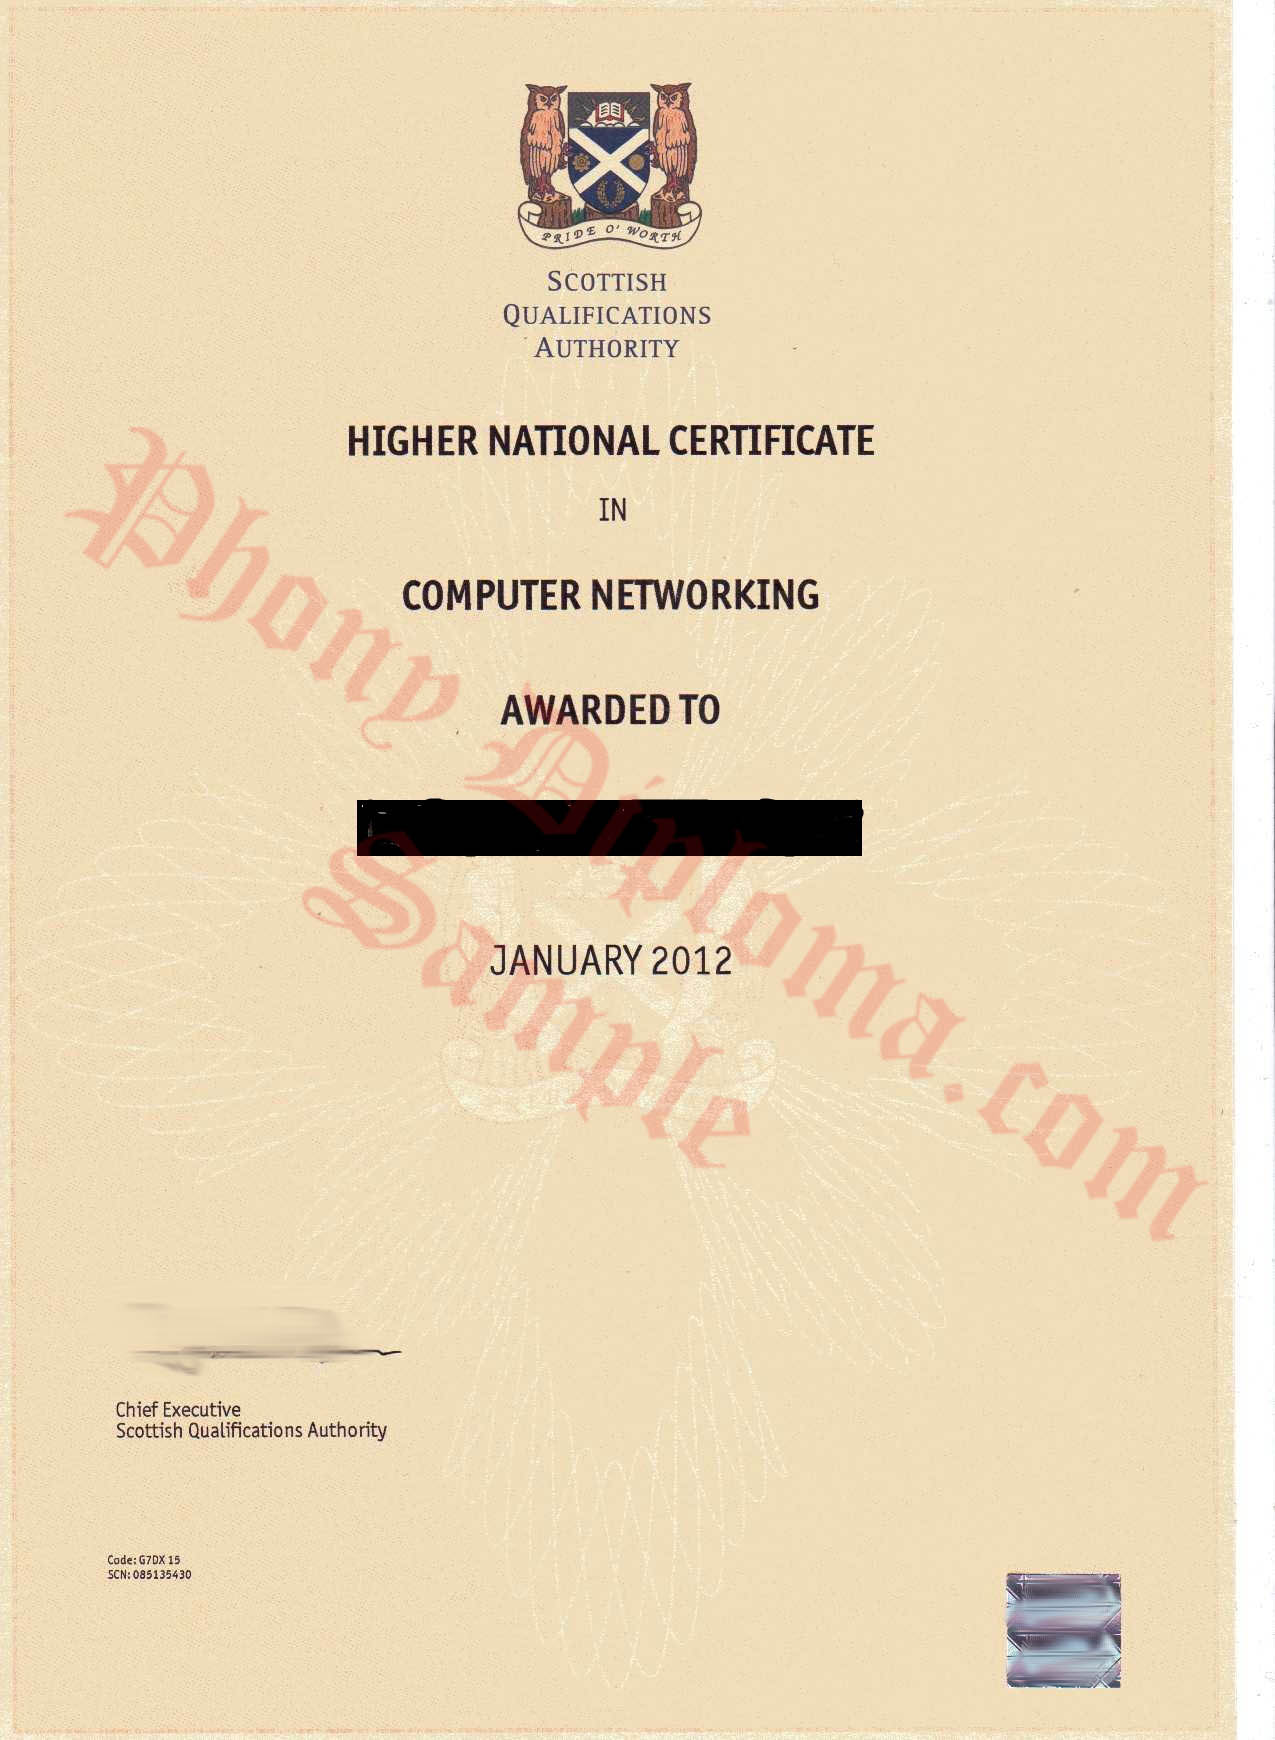 Hnc Scotland Free Sample From Phonydiploma